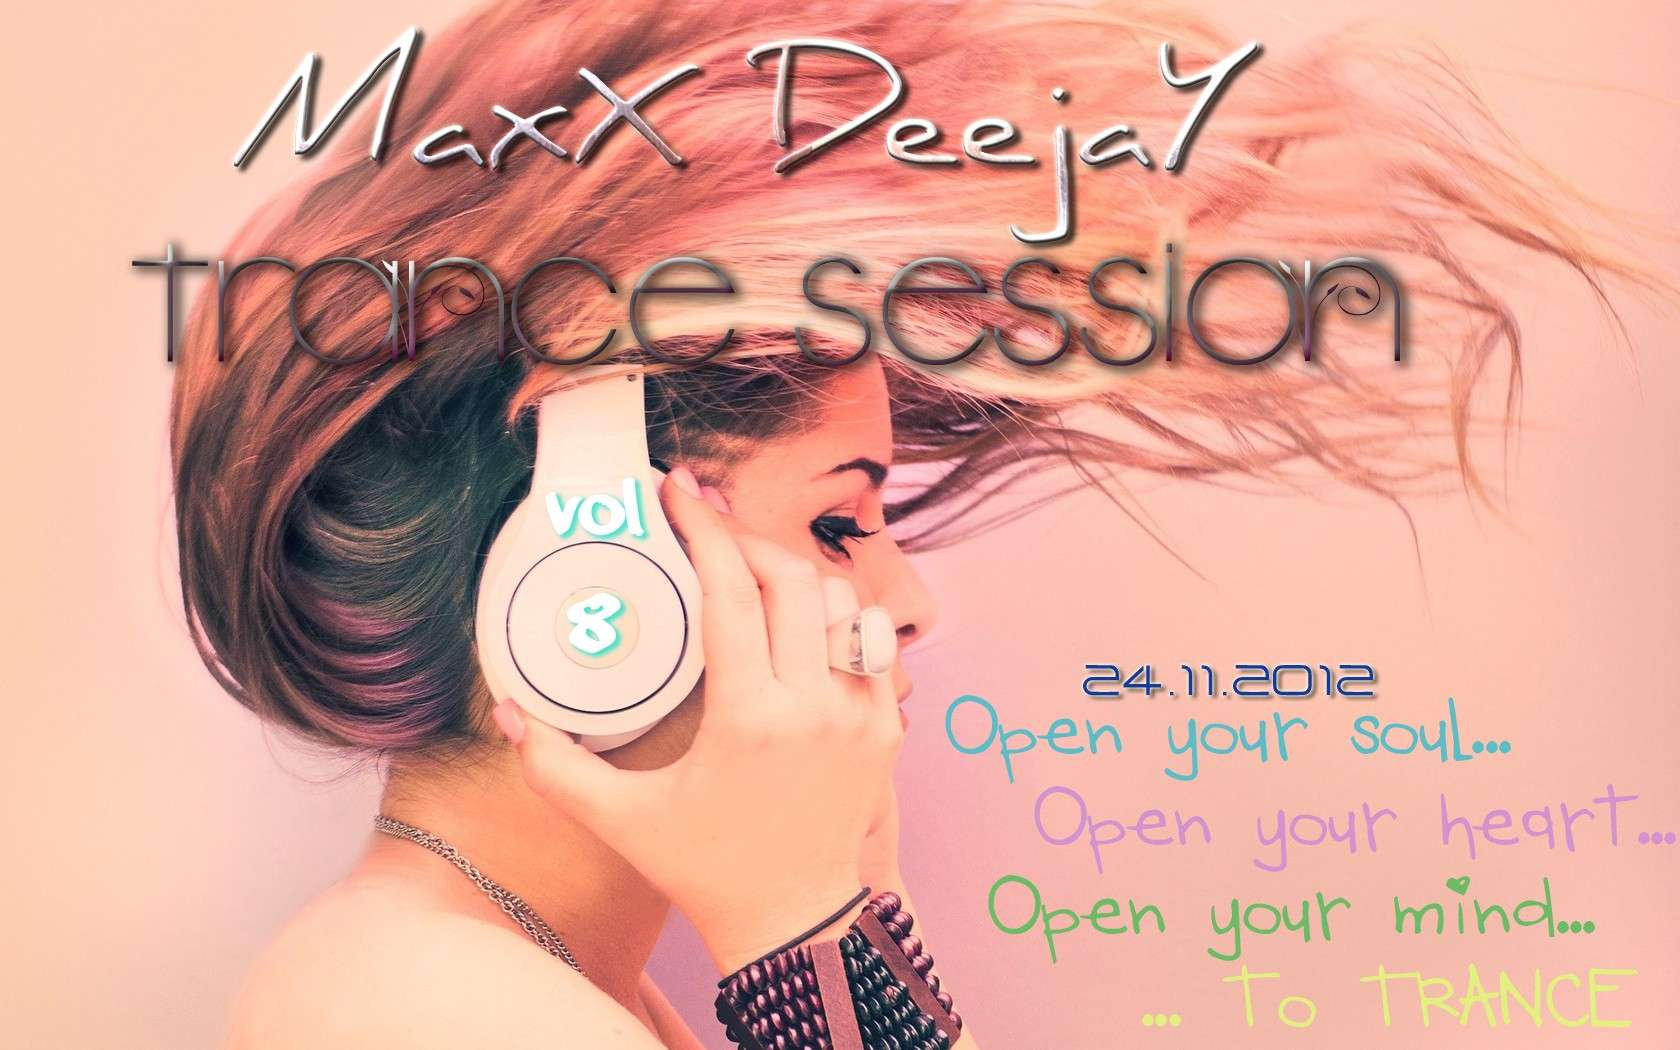 MaxX DeejaY - Trance Session vol 8 (24.11.2012)